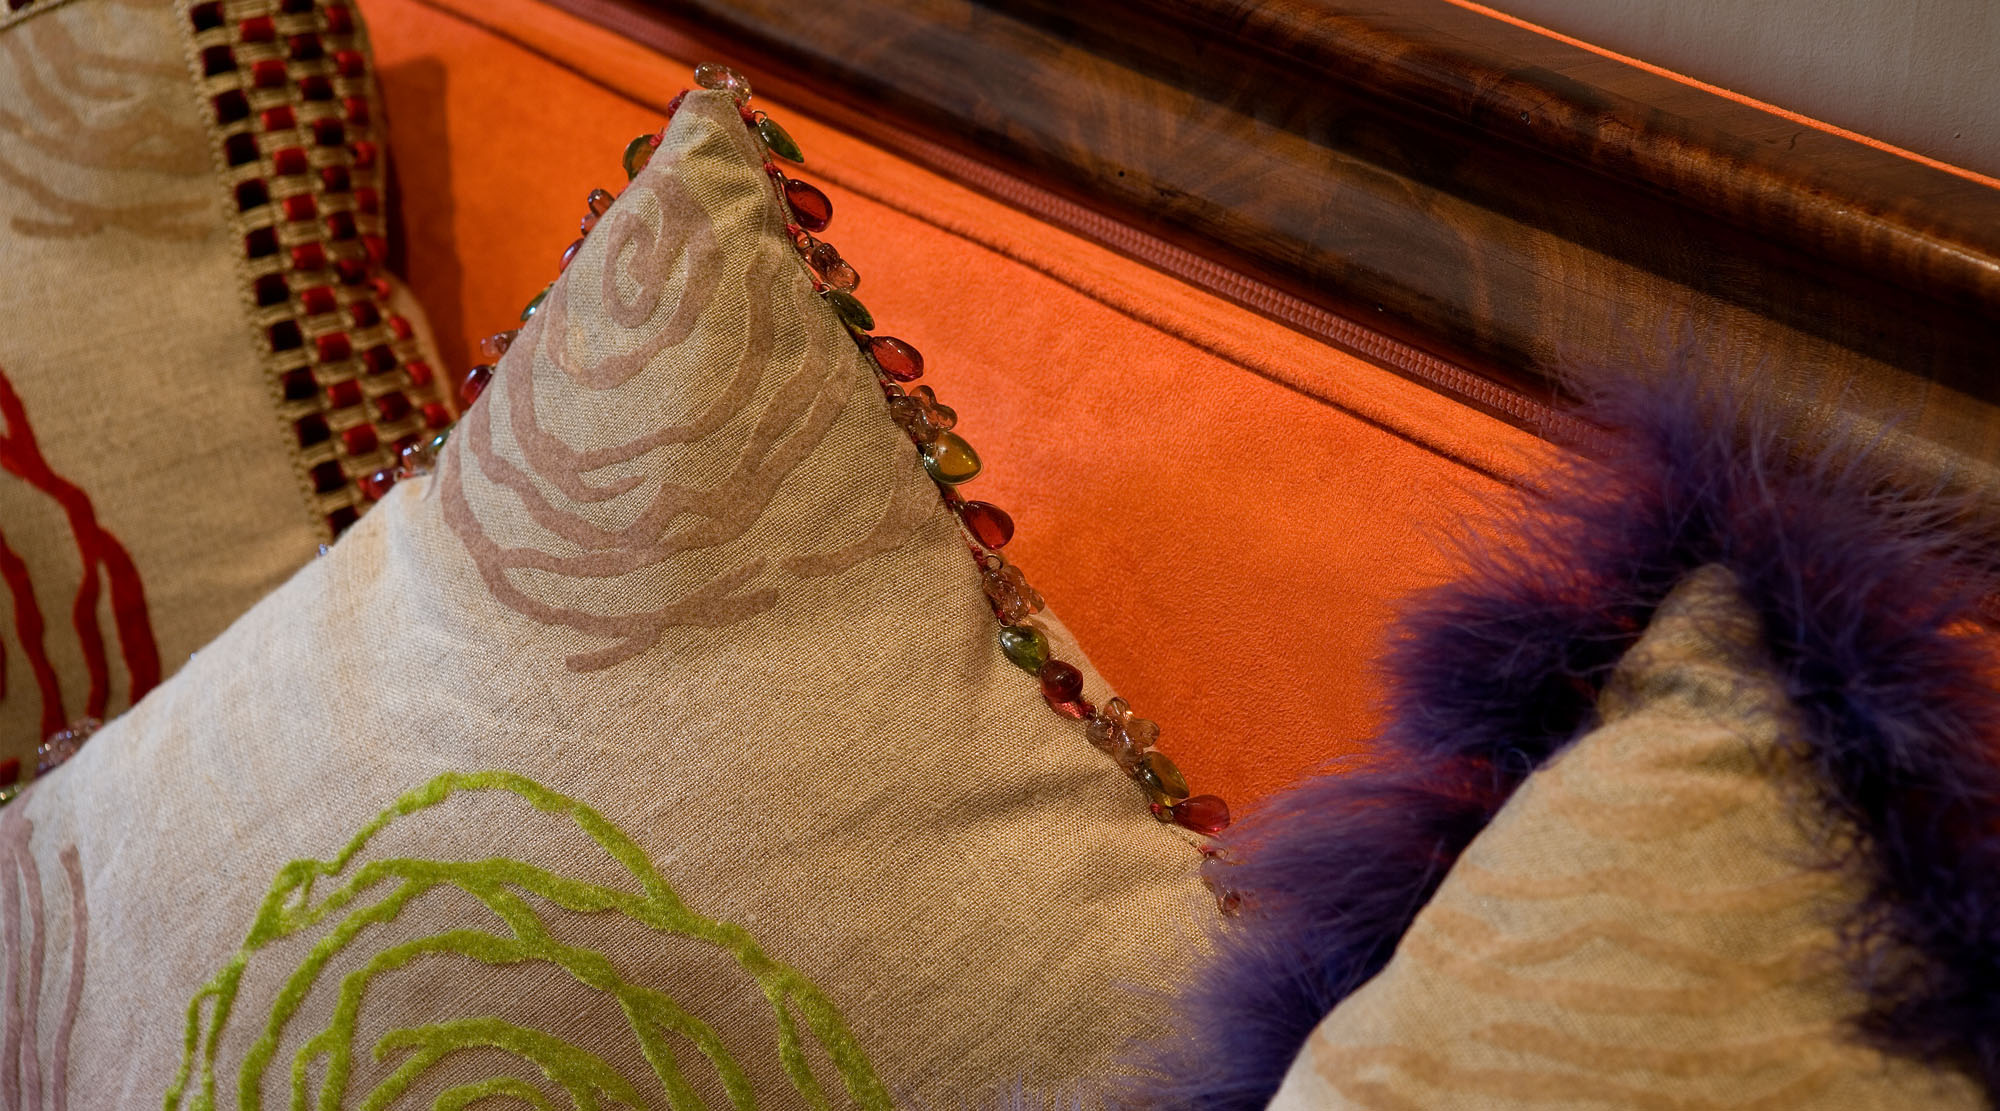 Luxury cushions on sofa trimmed with beads and faux fur.